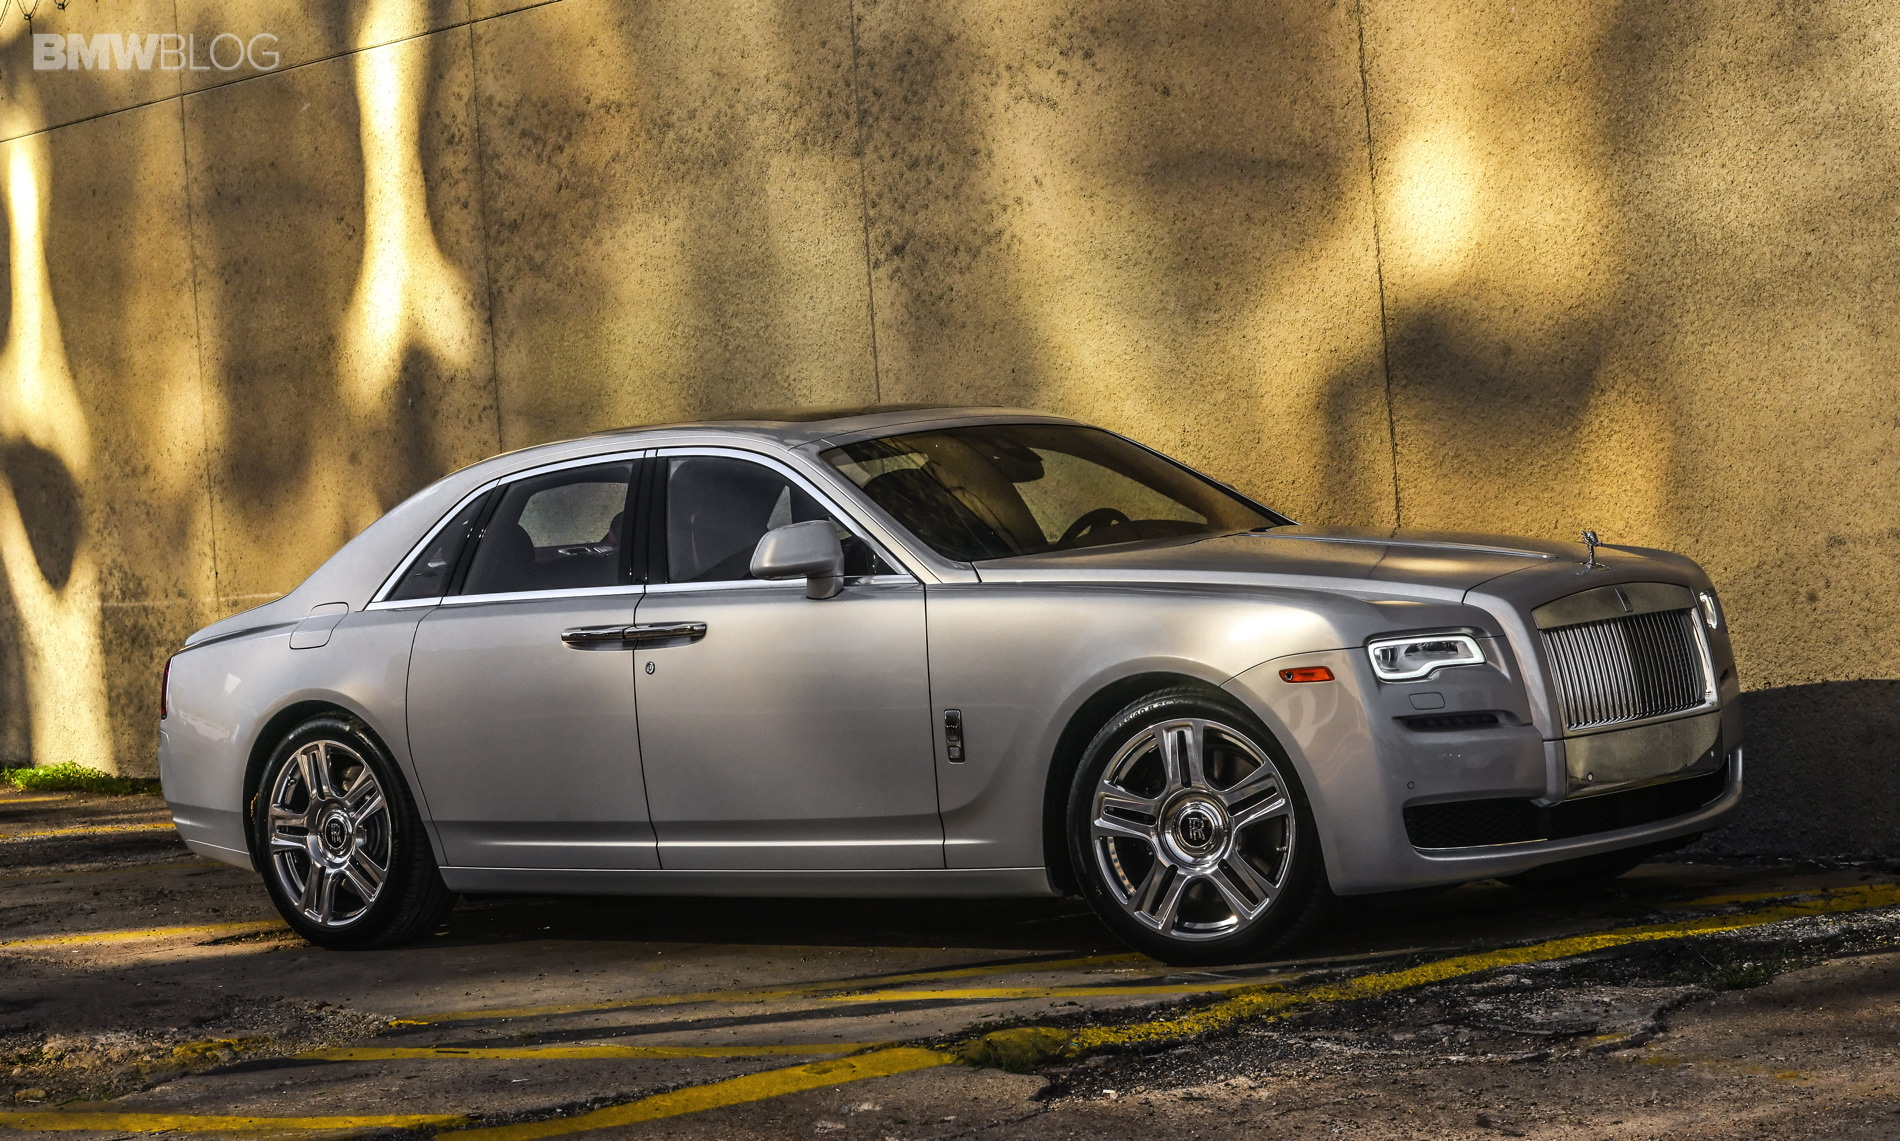 2015 Rolls royce Ghost Series Ii #11